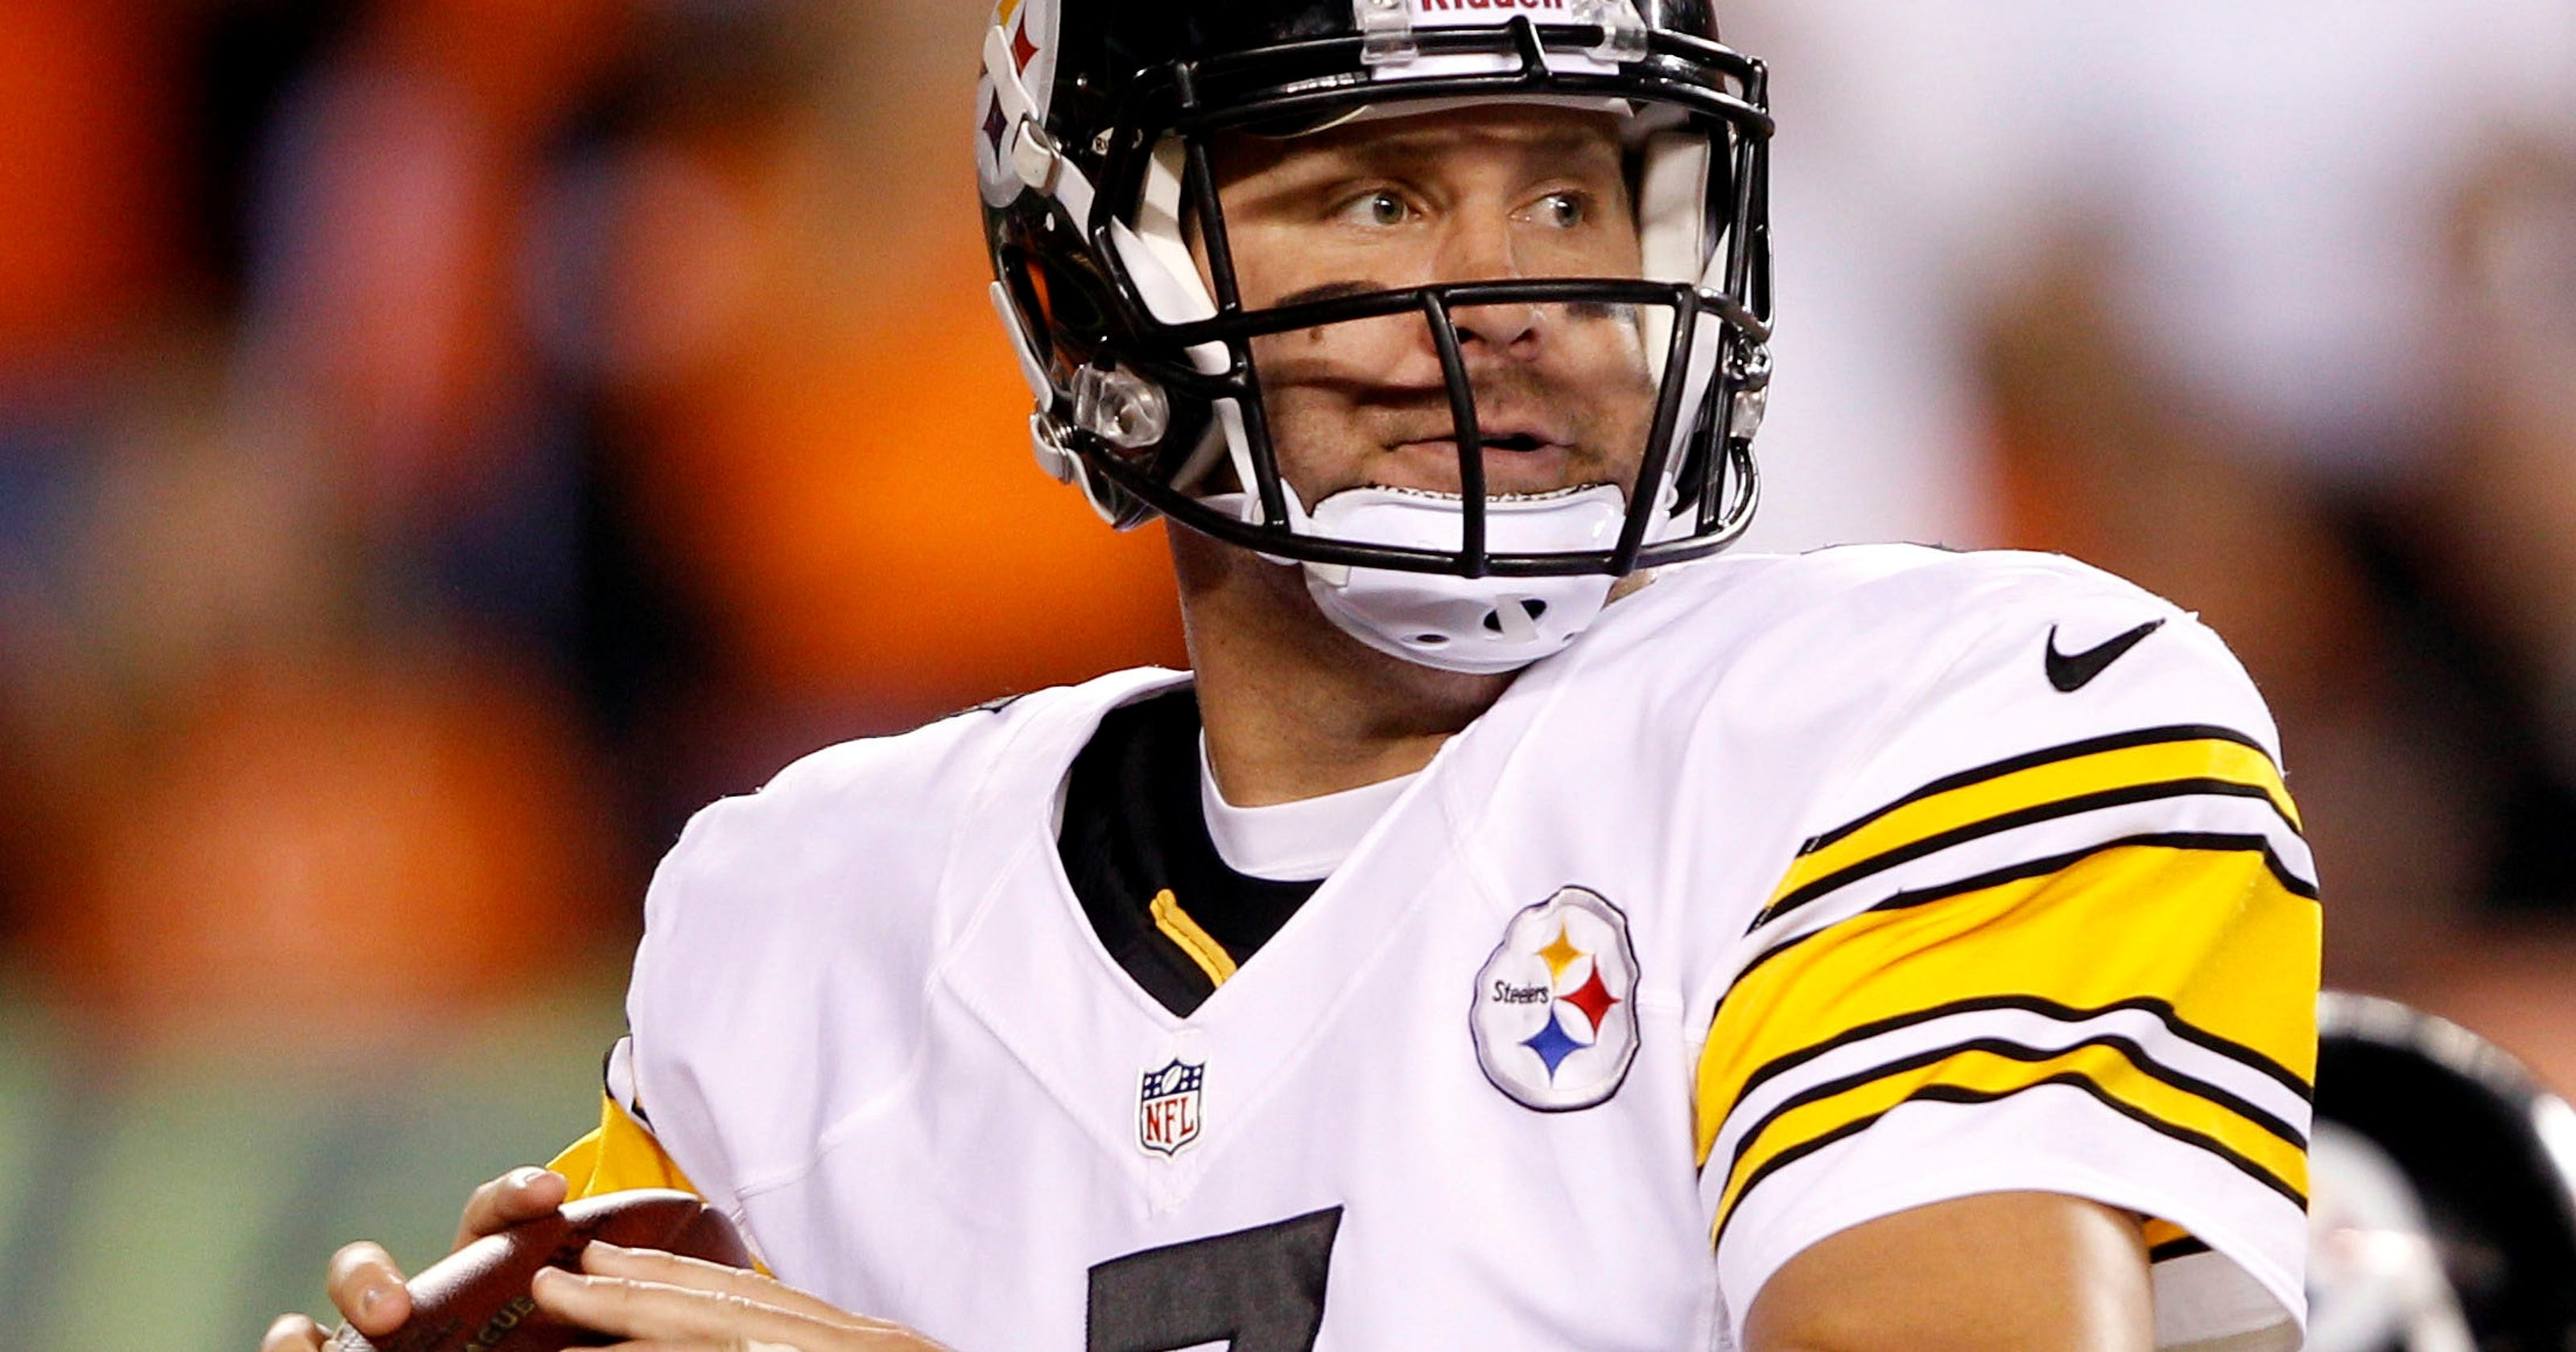 da77d0a1ba4 Ben Roethlisberger not jealous of QBs with big contracts